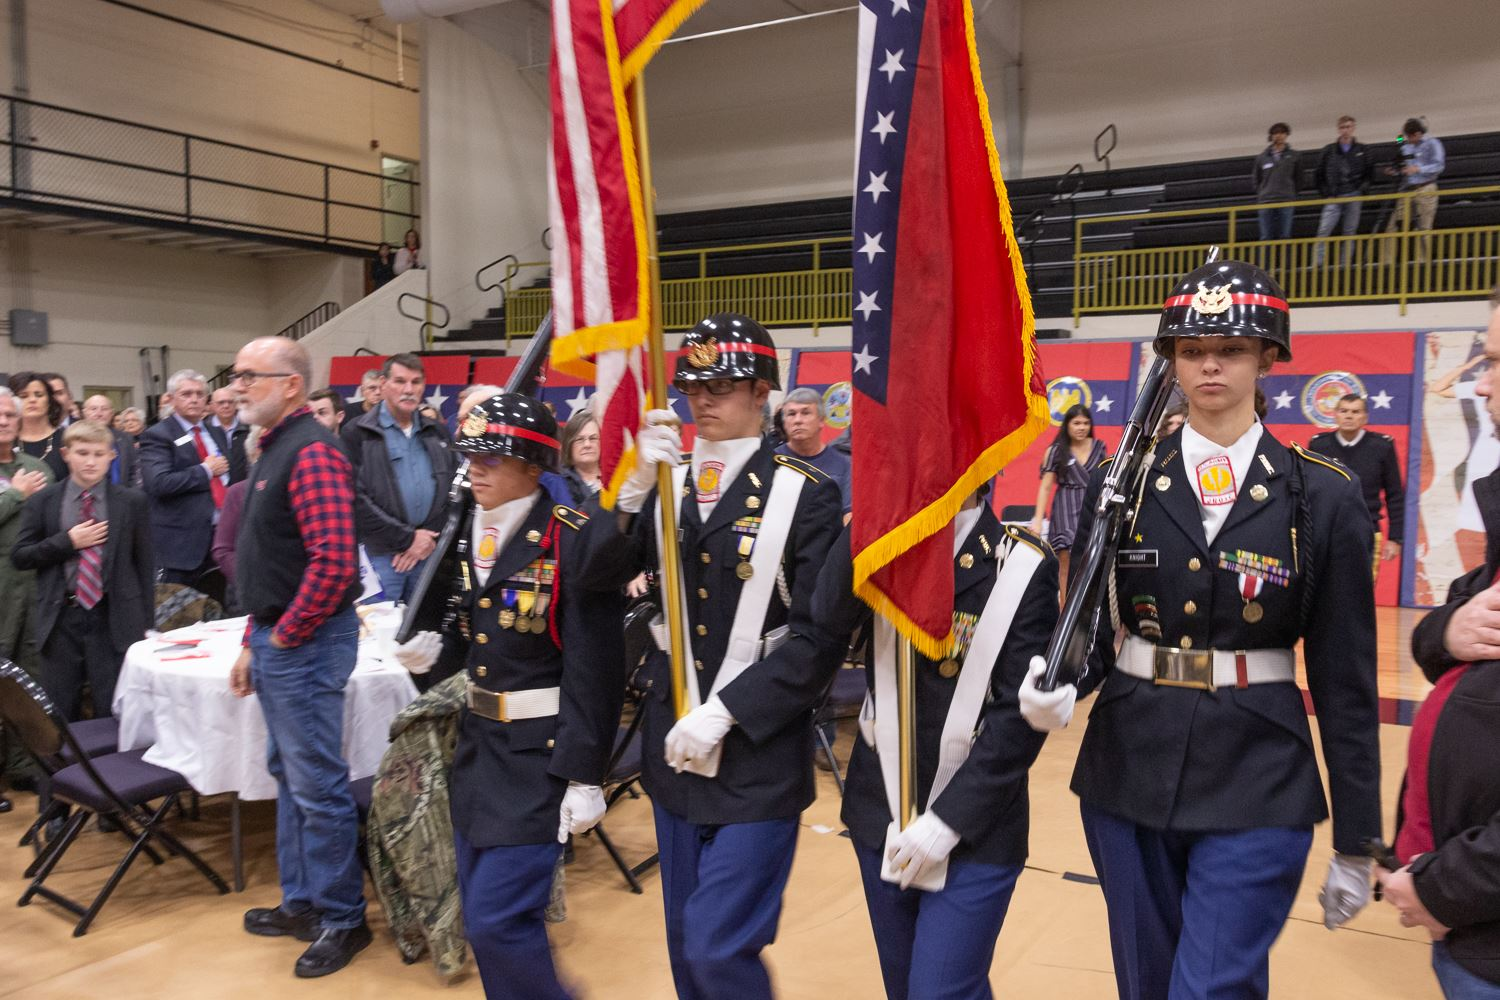 ROTC students march with the flag for presentation of the colors